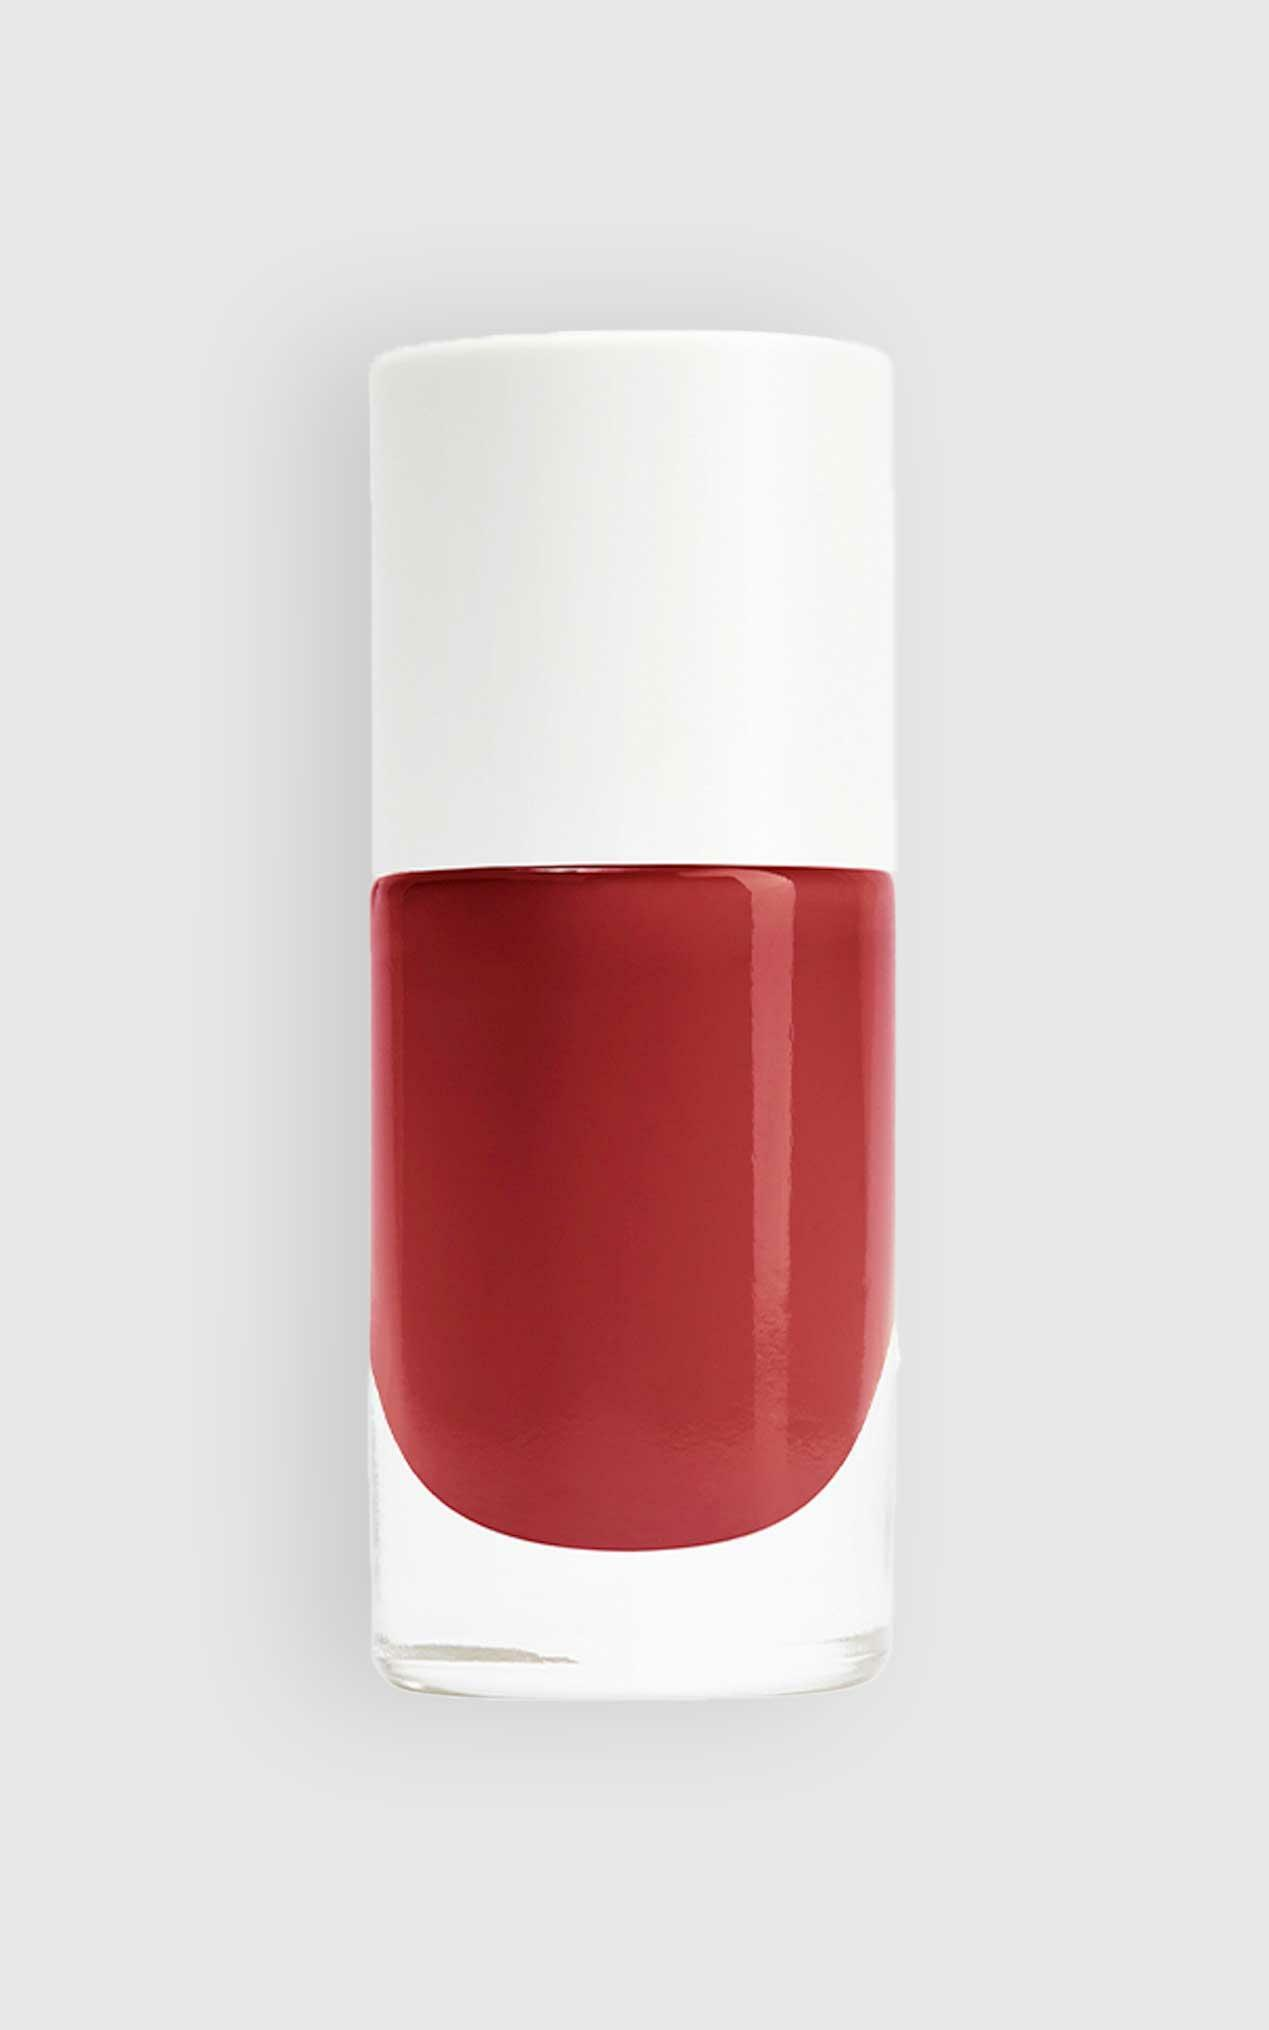 Nailmatic - Pure Color Anouk Nail Polish in Rosewood Brick, RED1, hi-res image number null